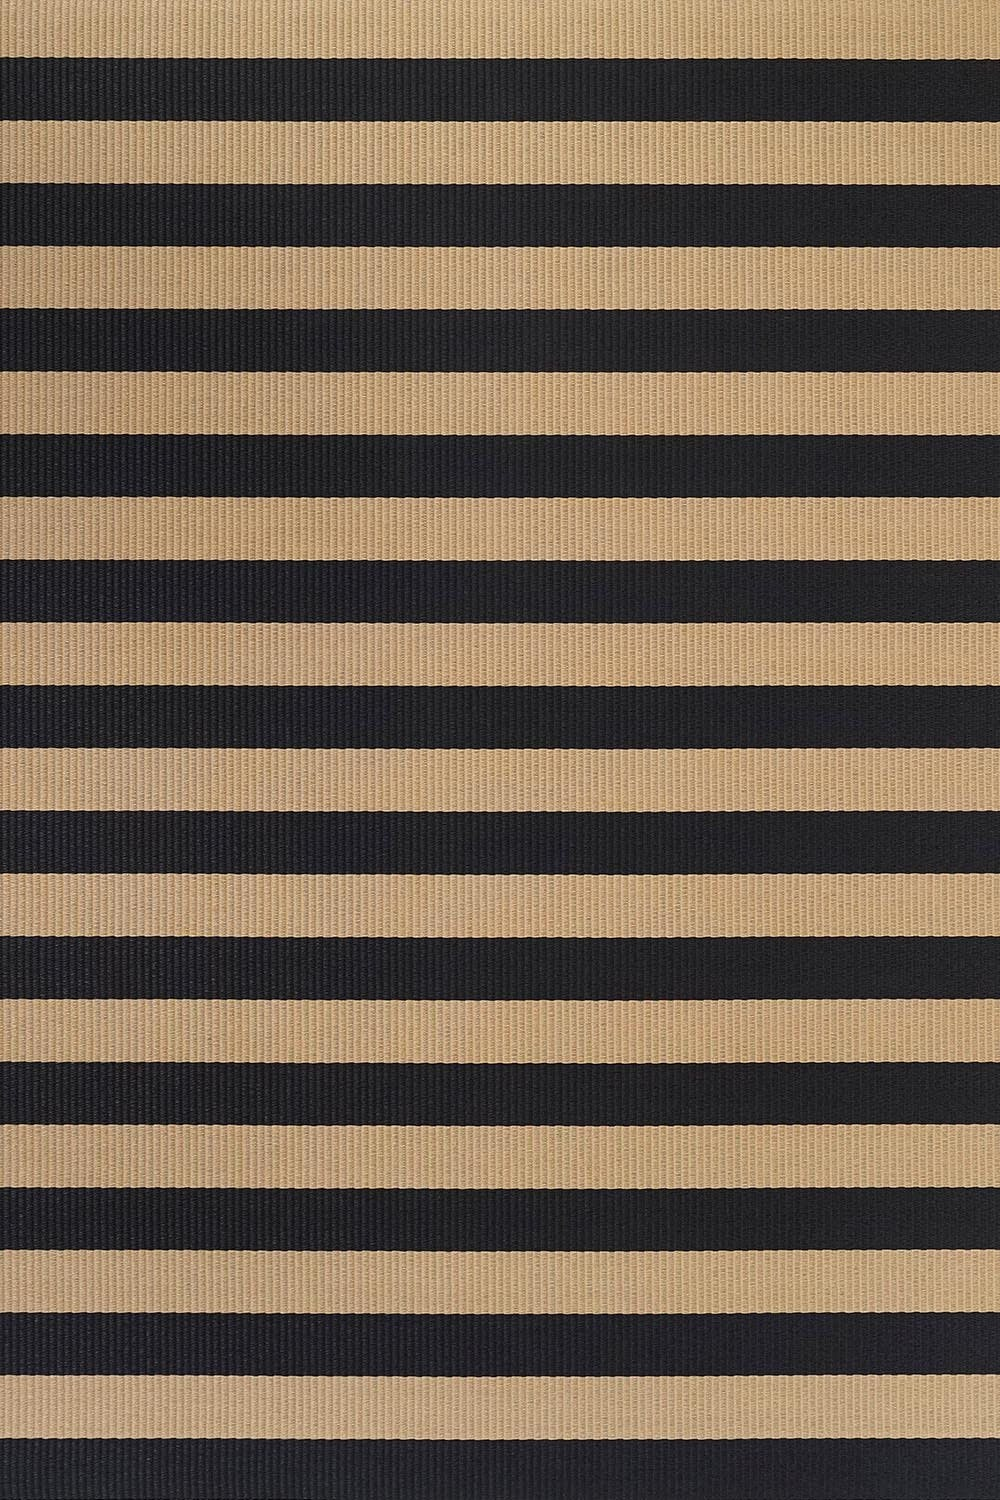 Woodnotes-big-stripe-carpet-black-natural-haute-living